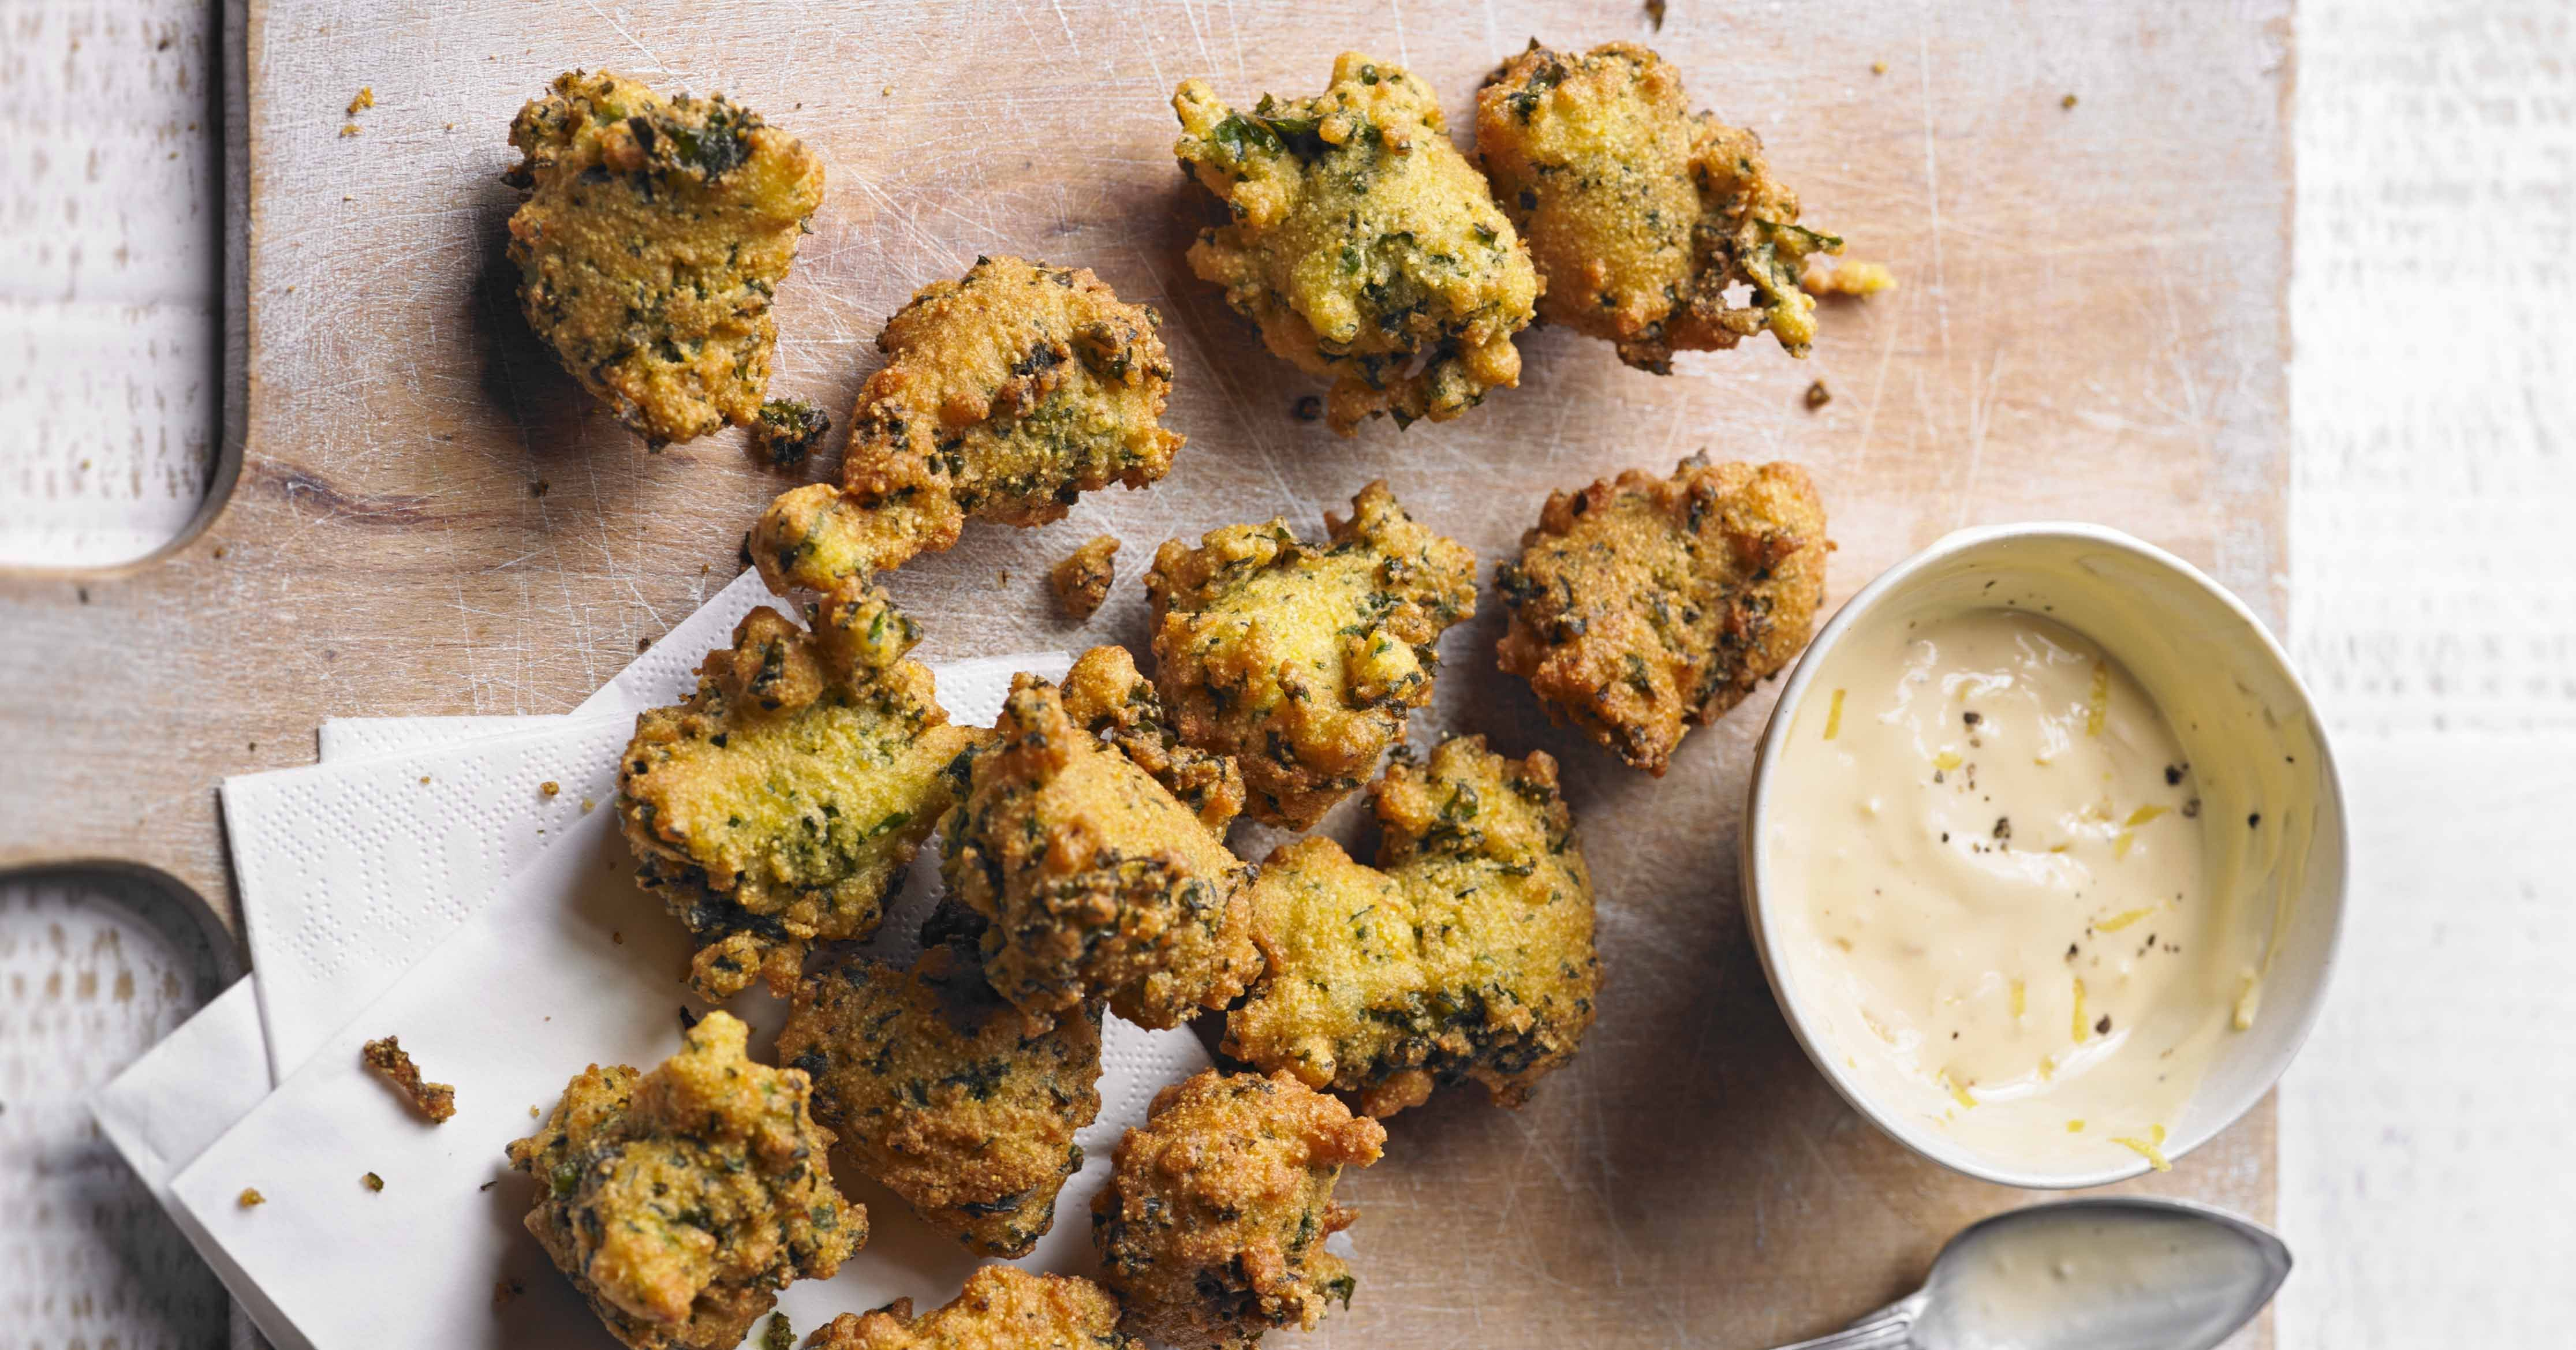 Our kale hush puppies are a greener alternative to a drinks party snack. The lemon aïoli adds a creamy and zesty touch and makes them all the more easy to go down.